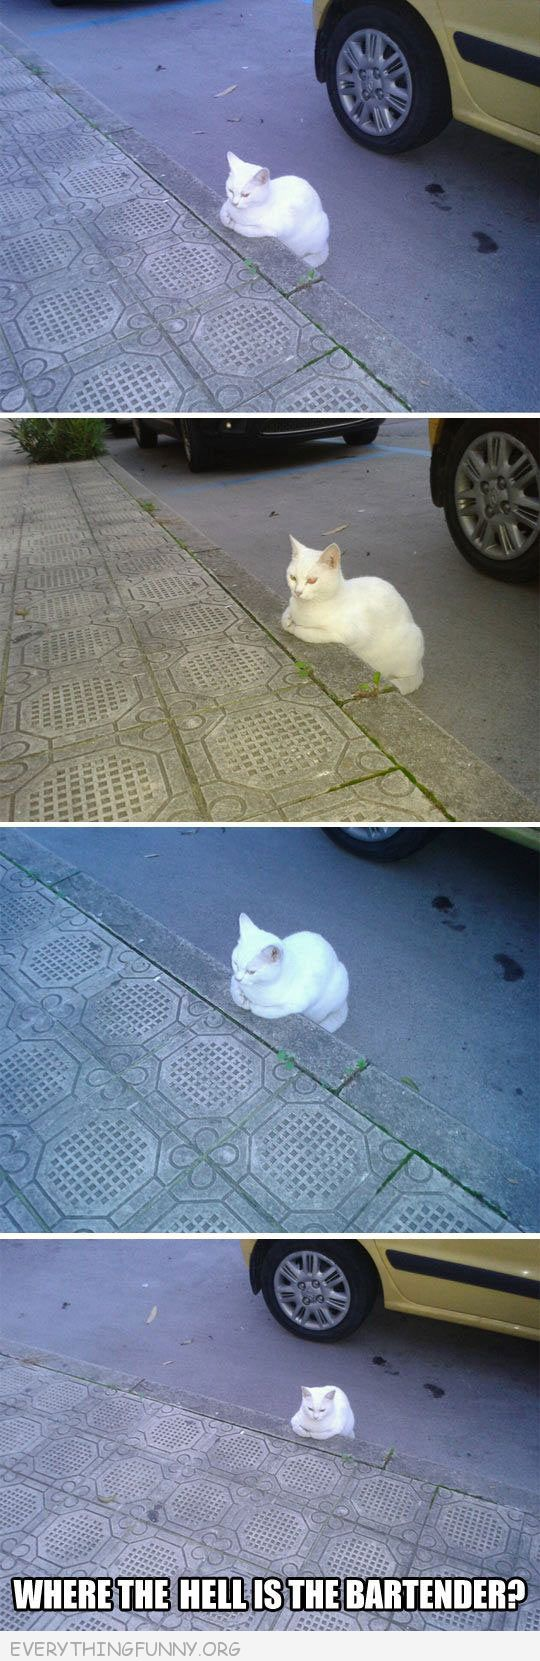 funny cat picture looks like he is sitting at bar curb